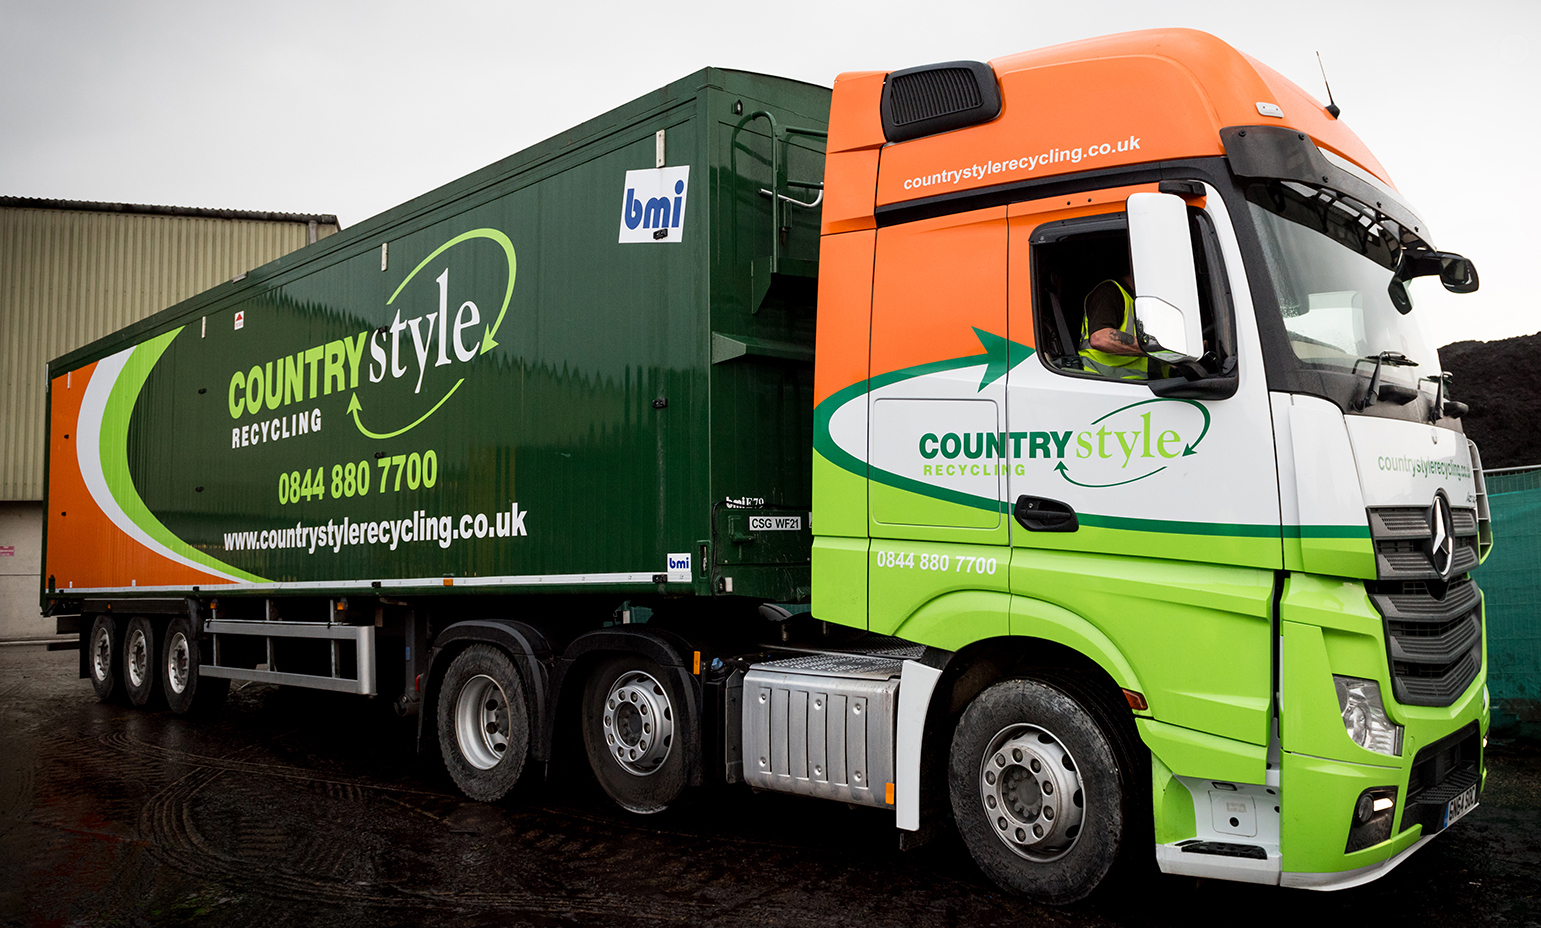 Countrystyle wins Kent Commercial Services Ltd contract, North Farm at Tunbridge Wells and Dunbrik at Sevenoaks